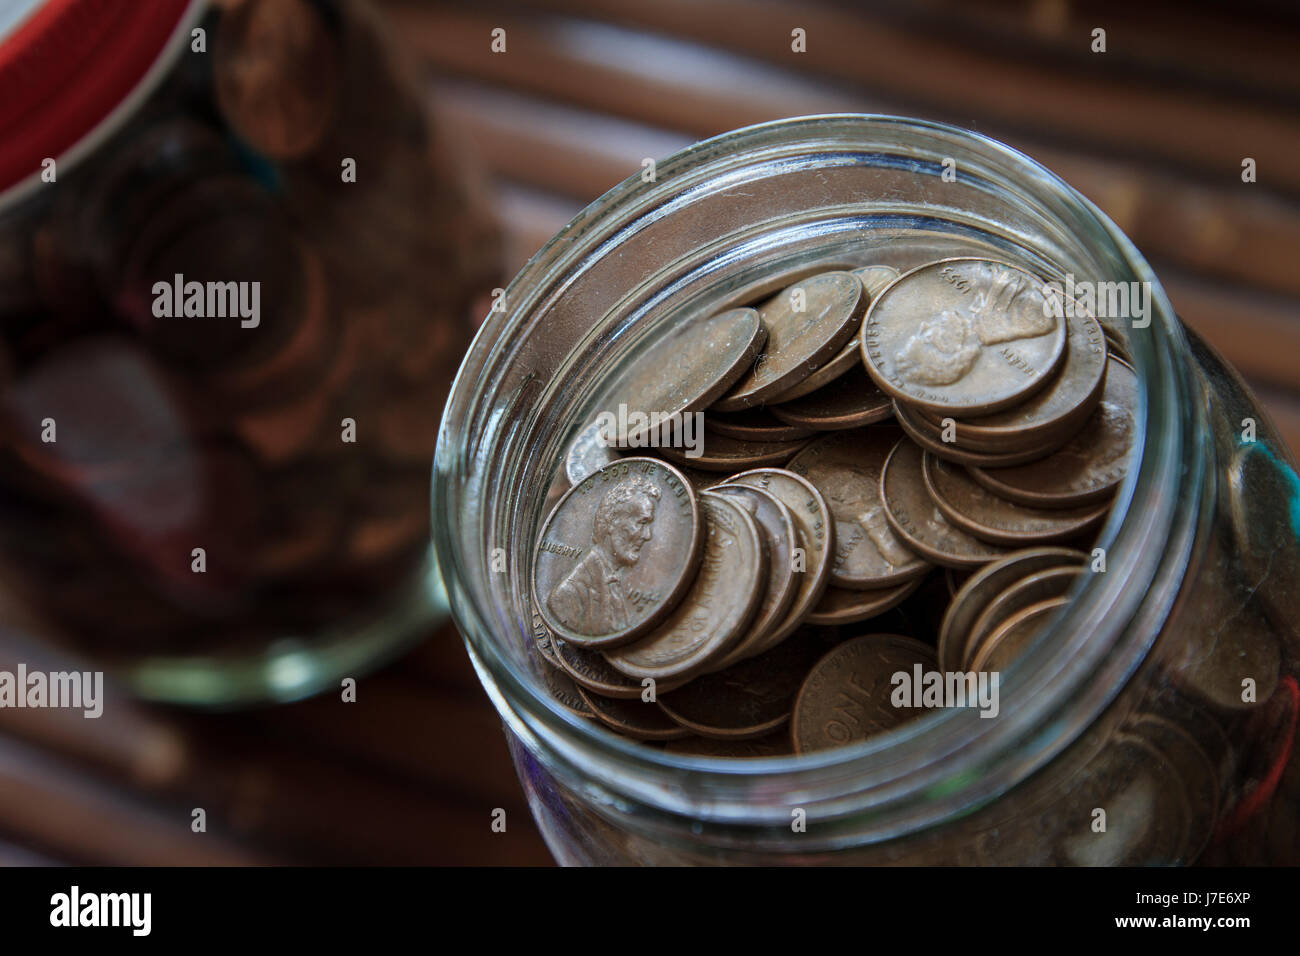 Jar filled with Pennies us currency one cent piece Stock Photo